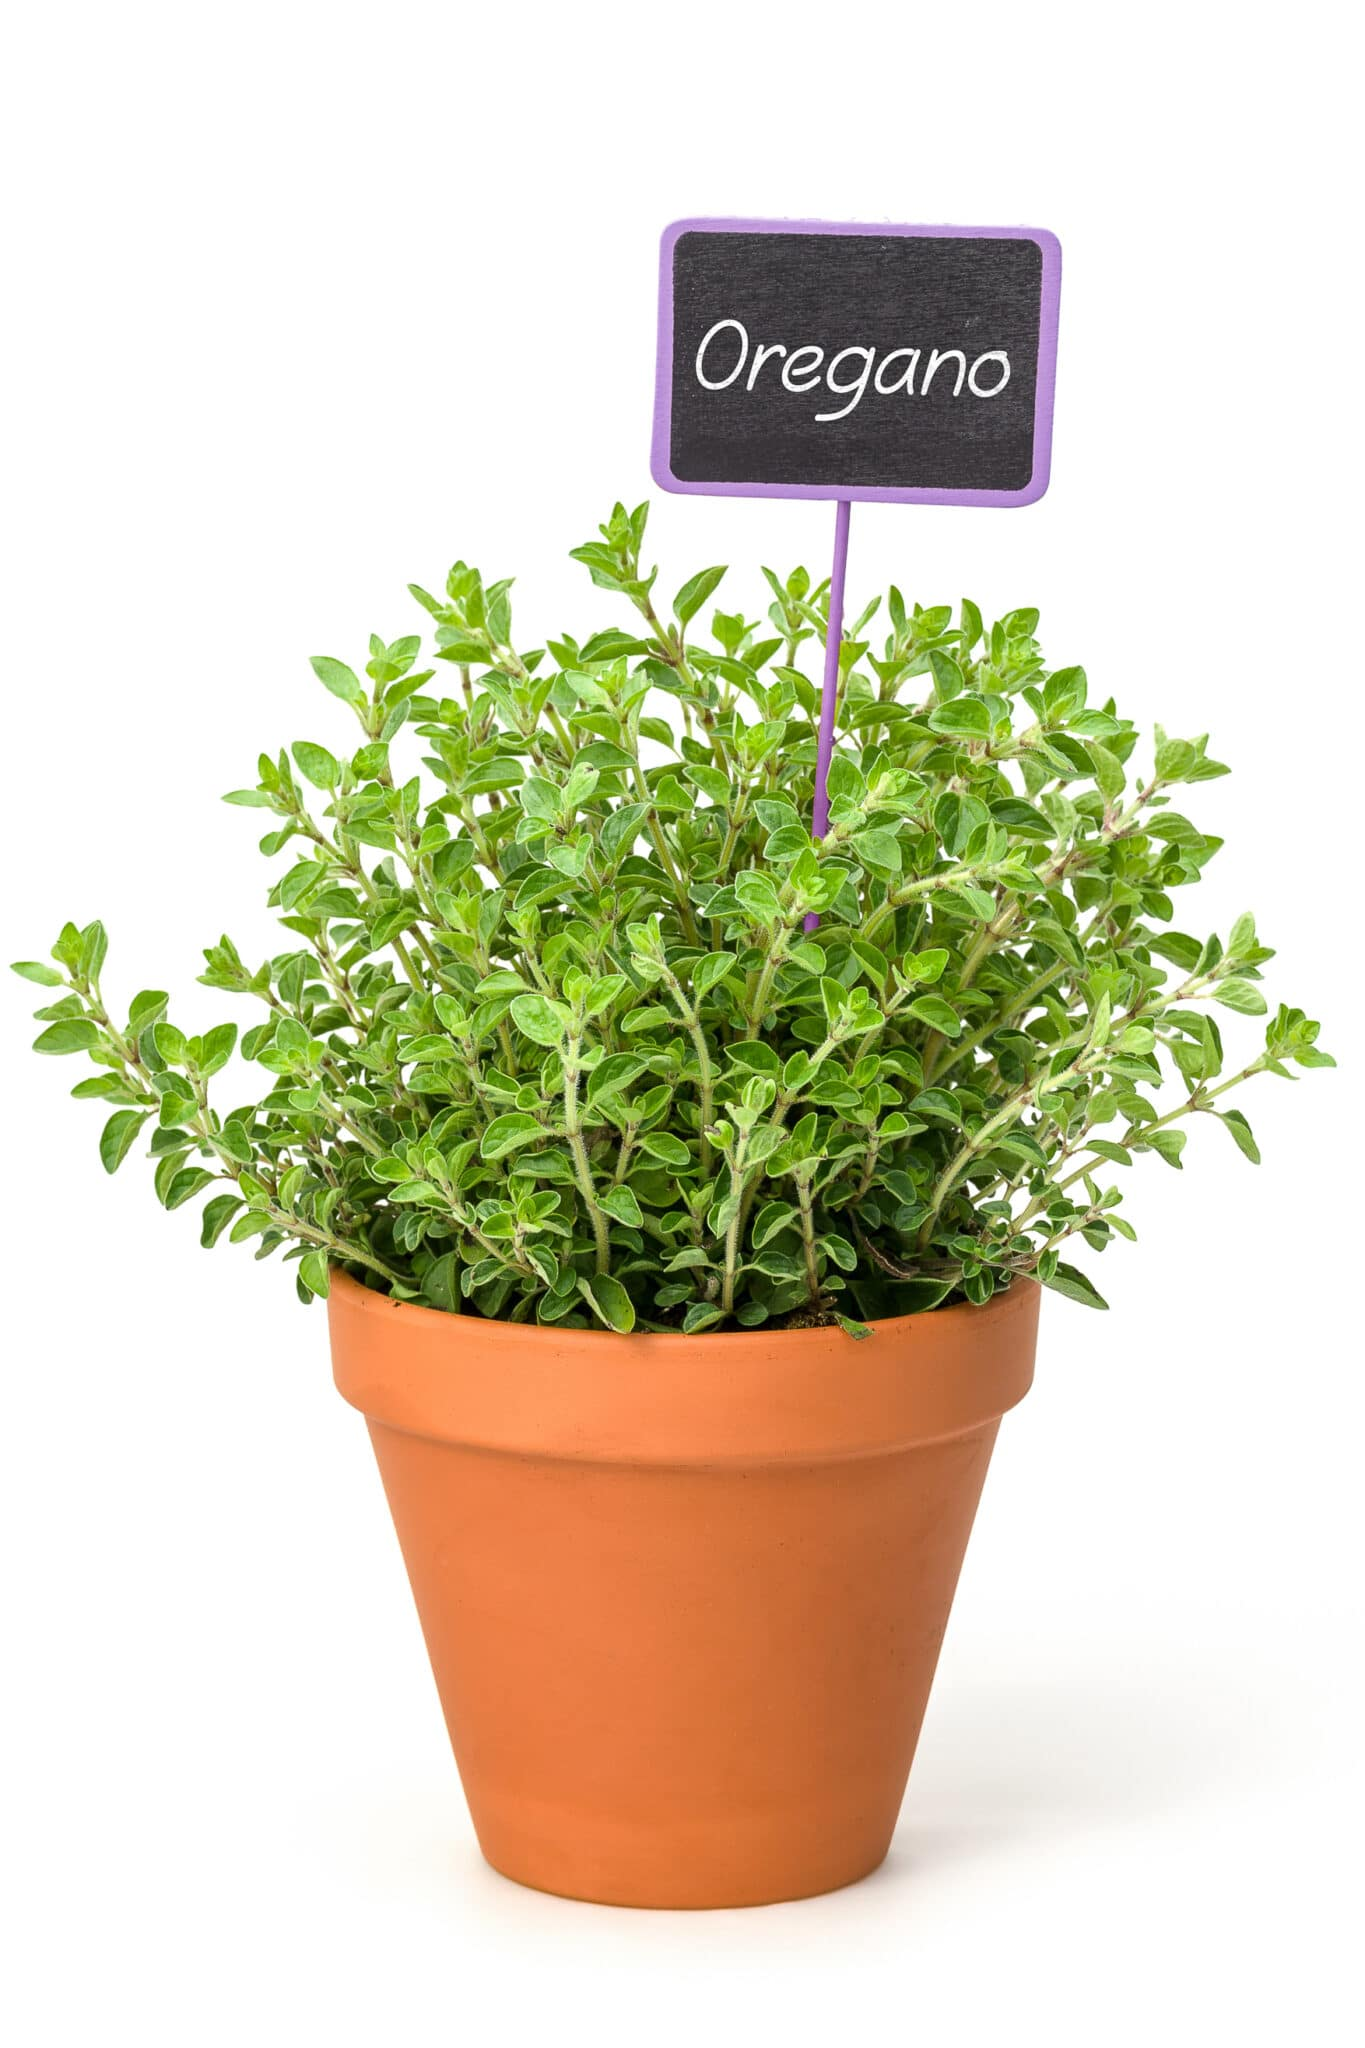 Oregano growing in a small terracotta herb planter.